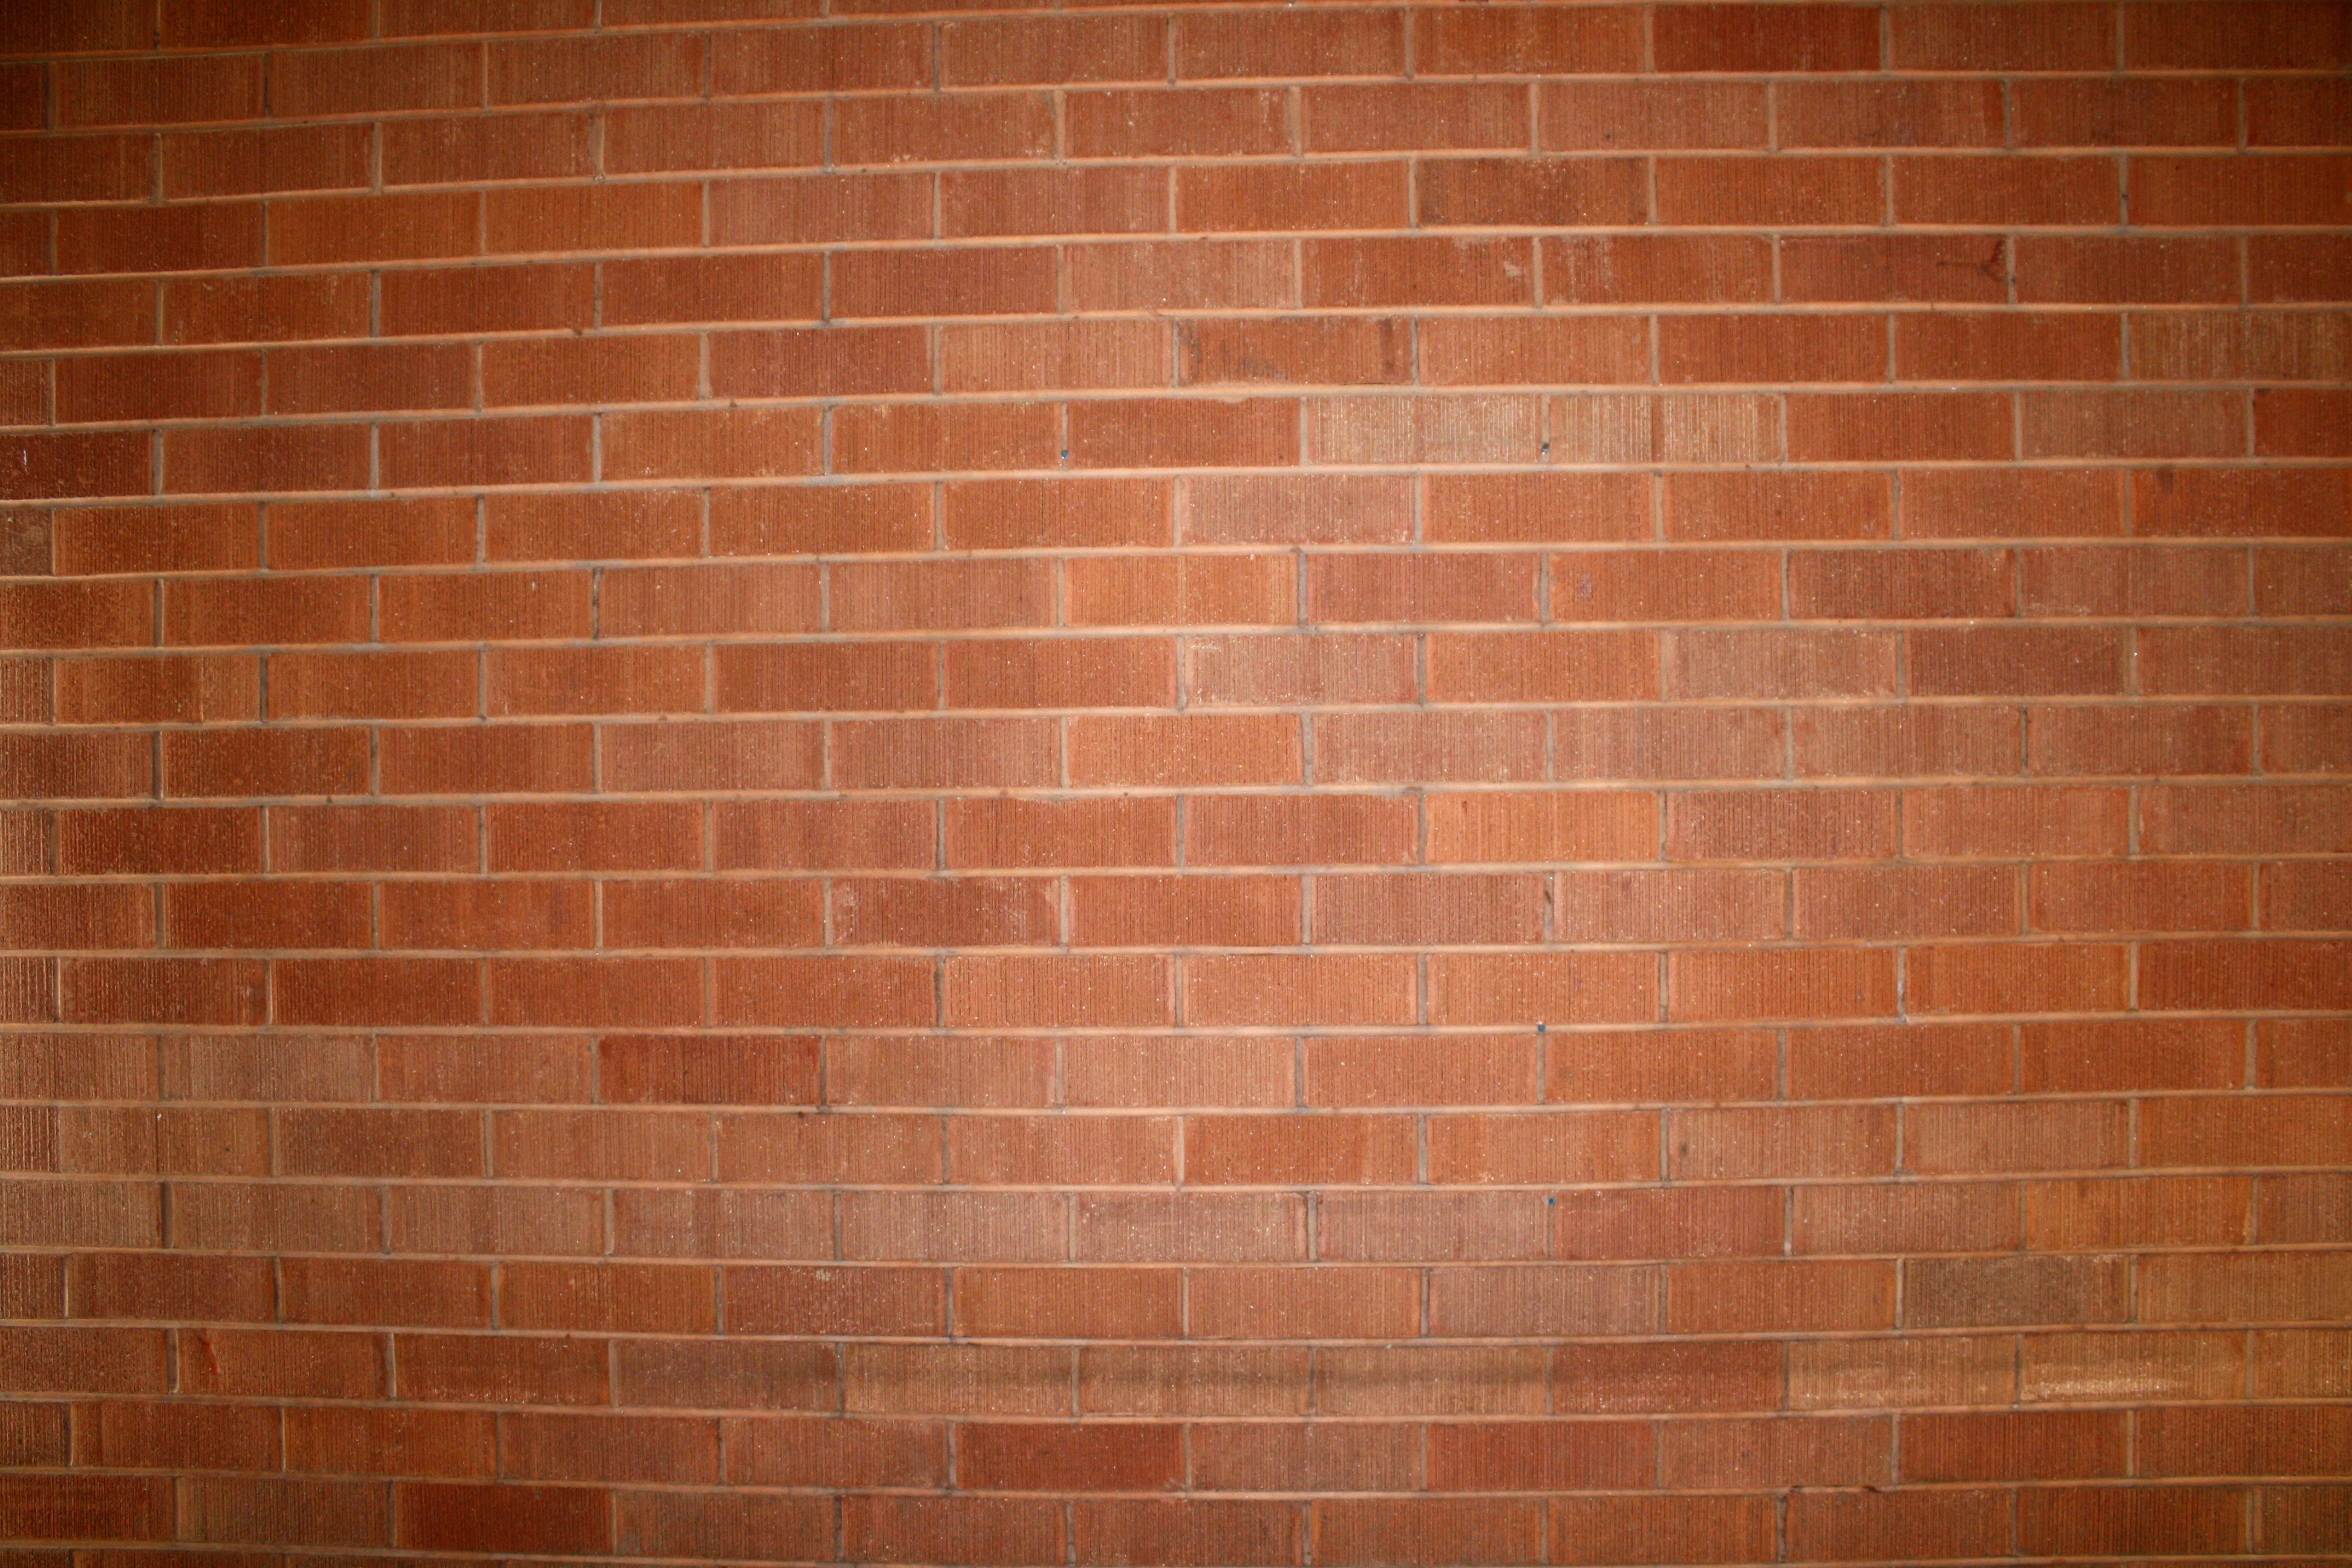 Brick Wall Texture Picture.